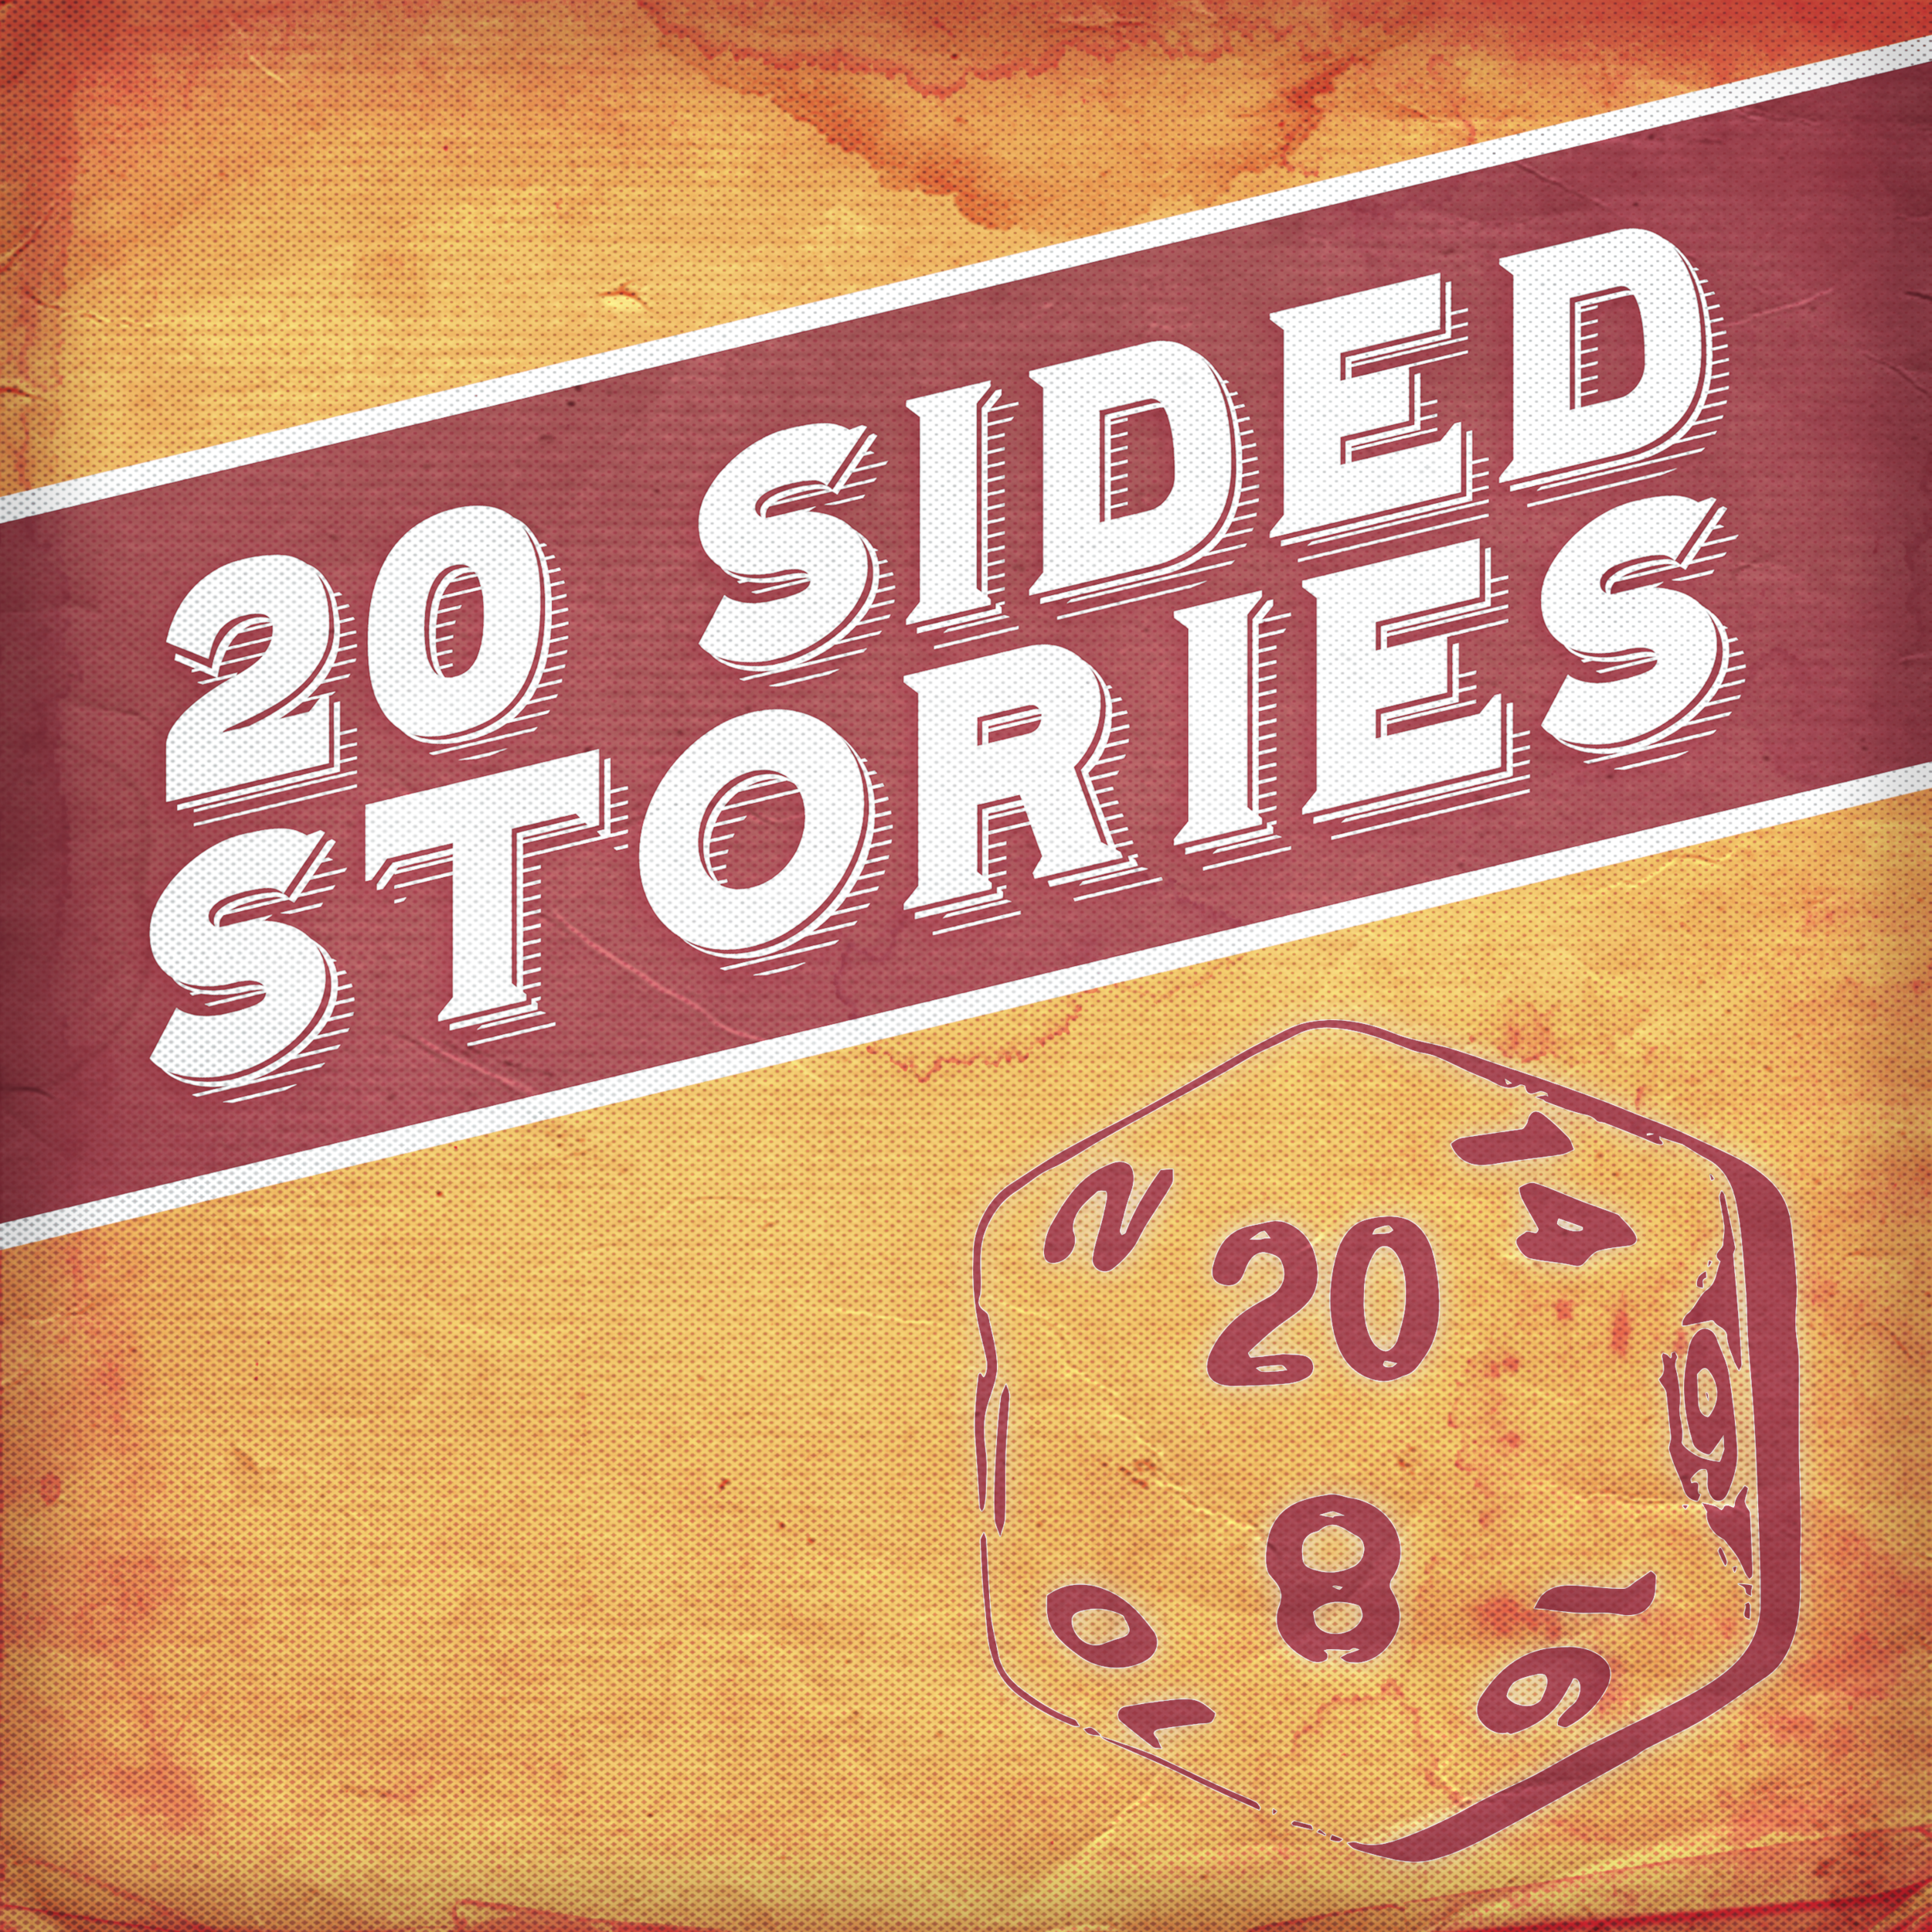 20 Sided Stories main cover art, featuring a 20 sided dice